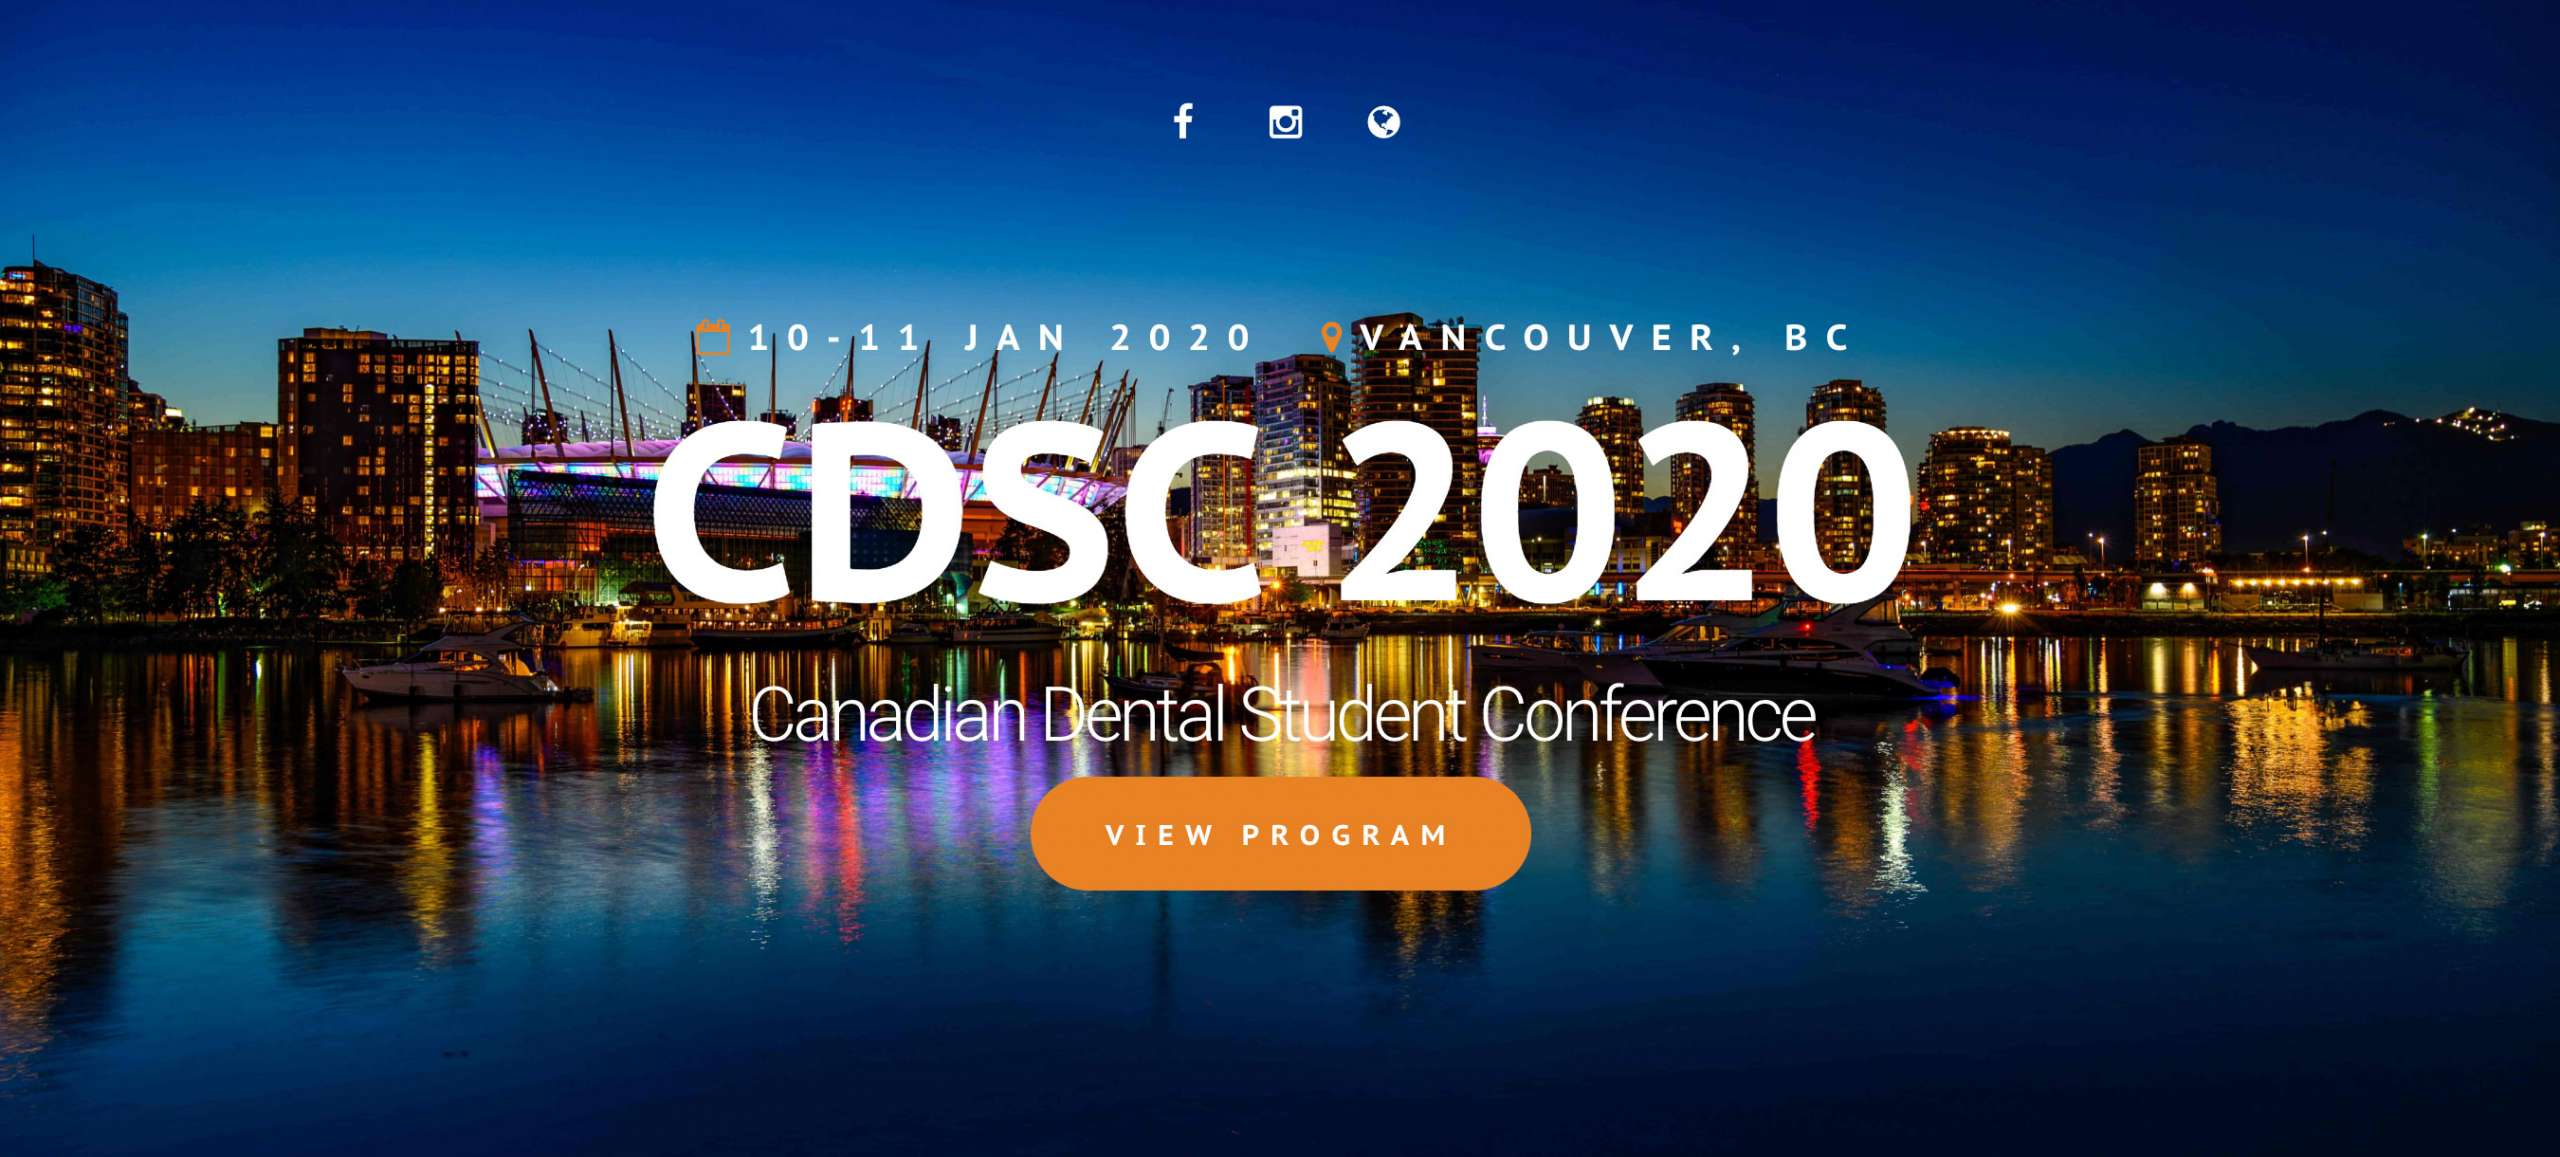 Canadian Dental Student Conference 2020